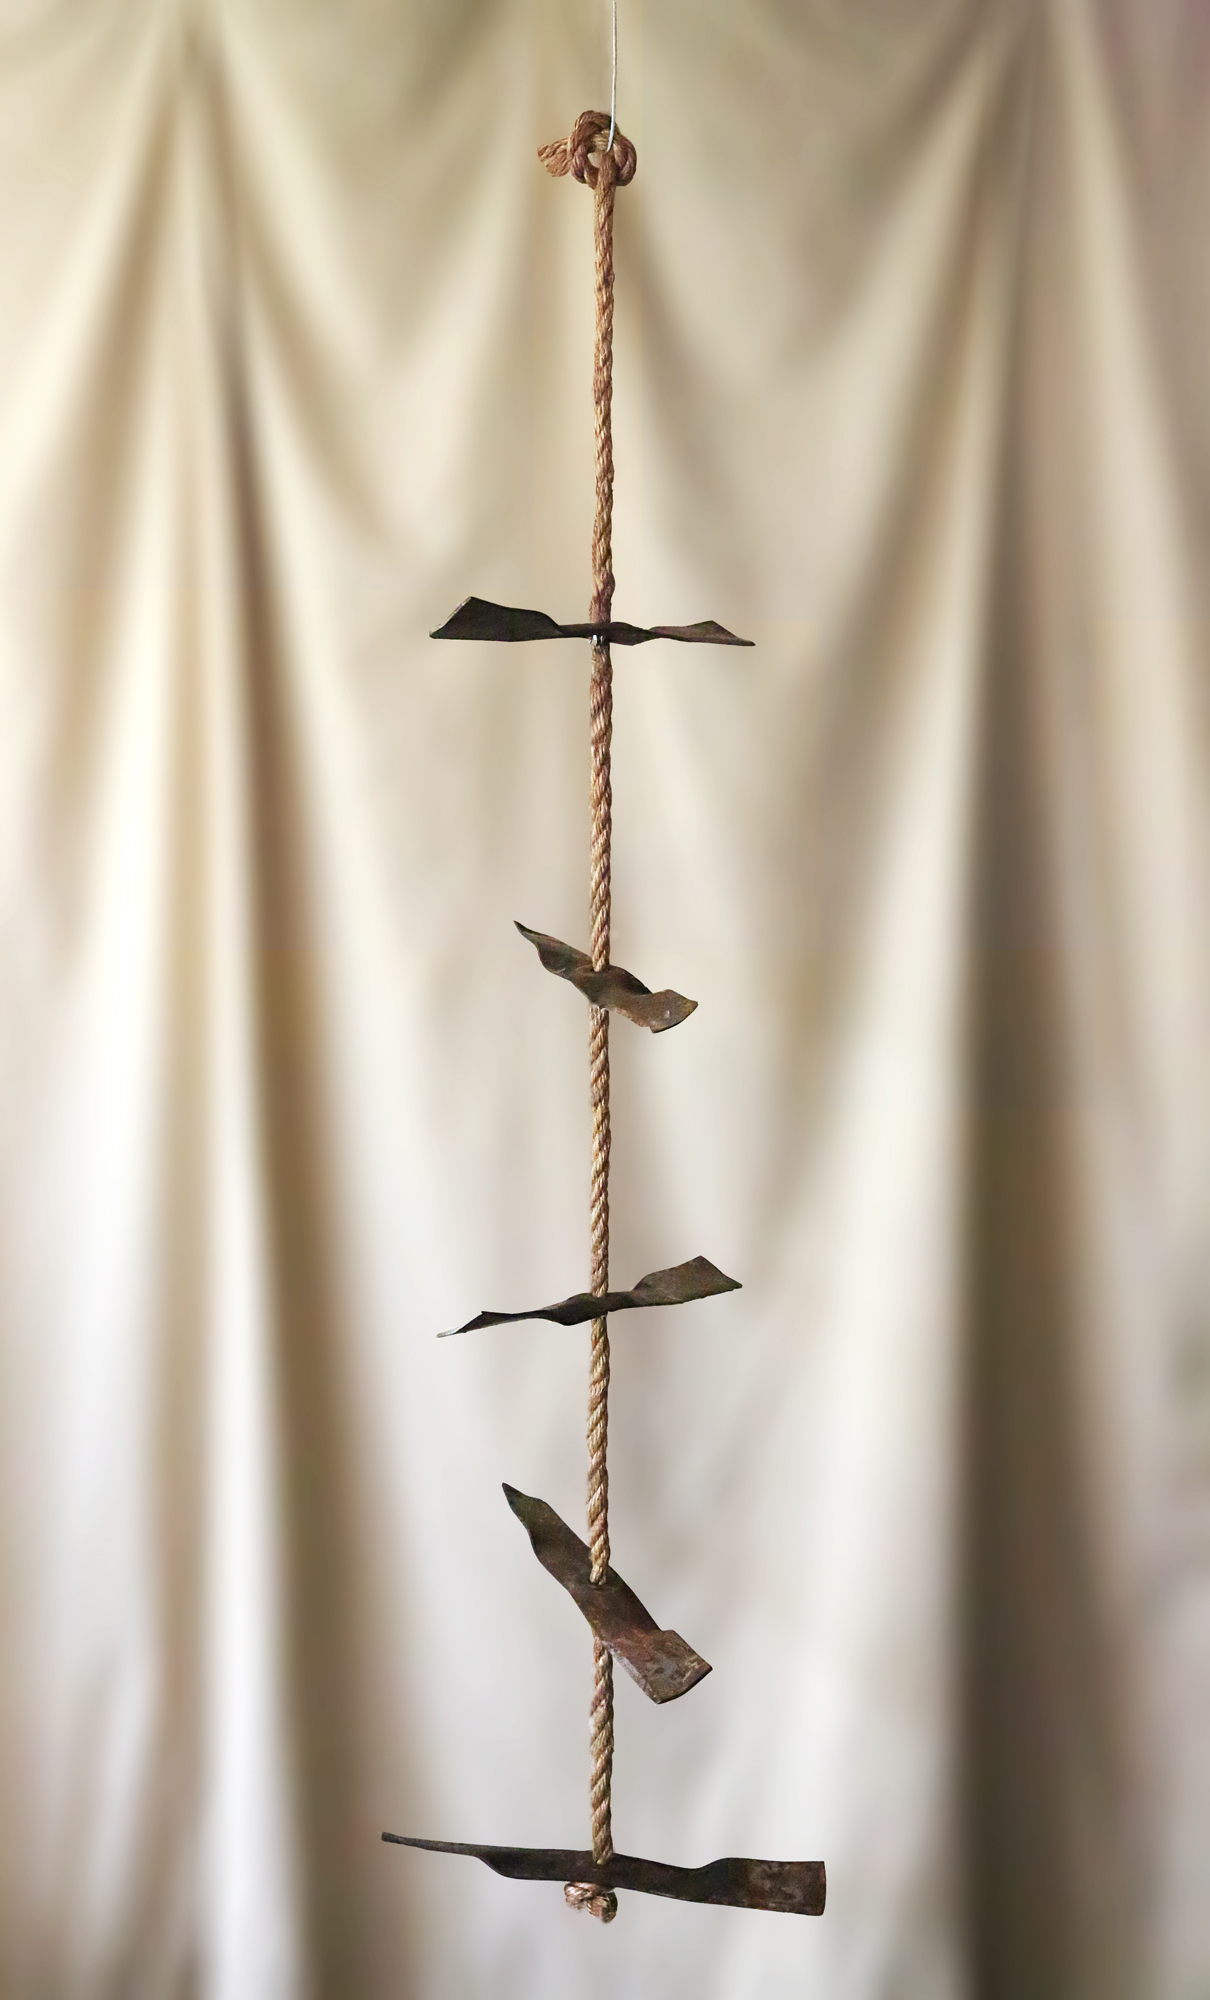 Mobile sculpture of abstract ladder with 5 salvaged tractor blades evenly spaced on single rope 6ft long